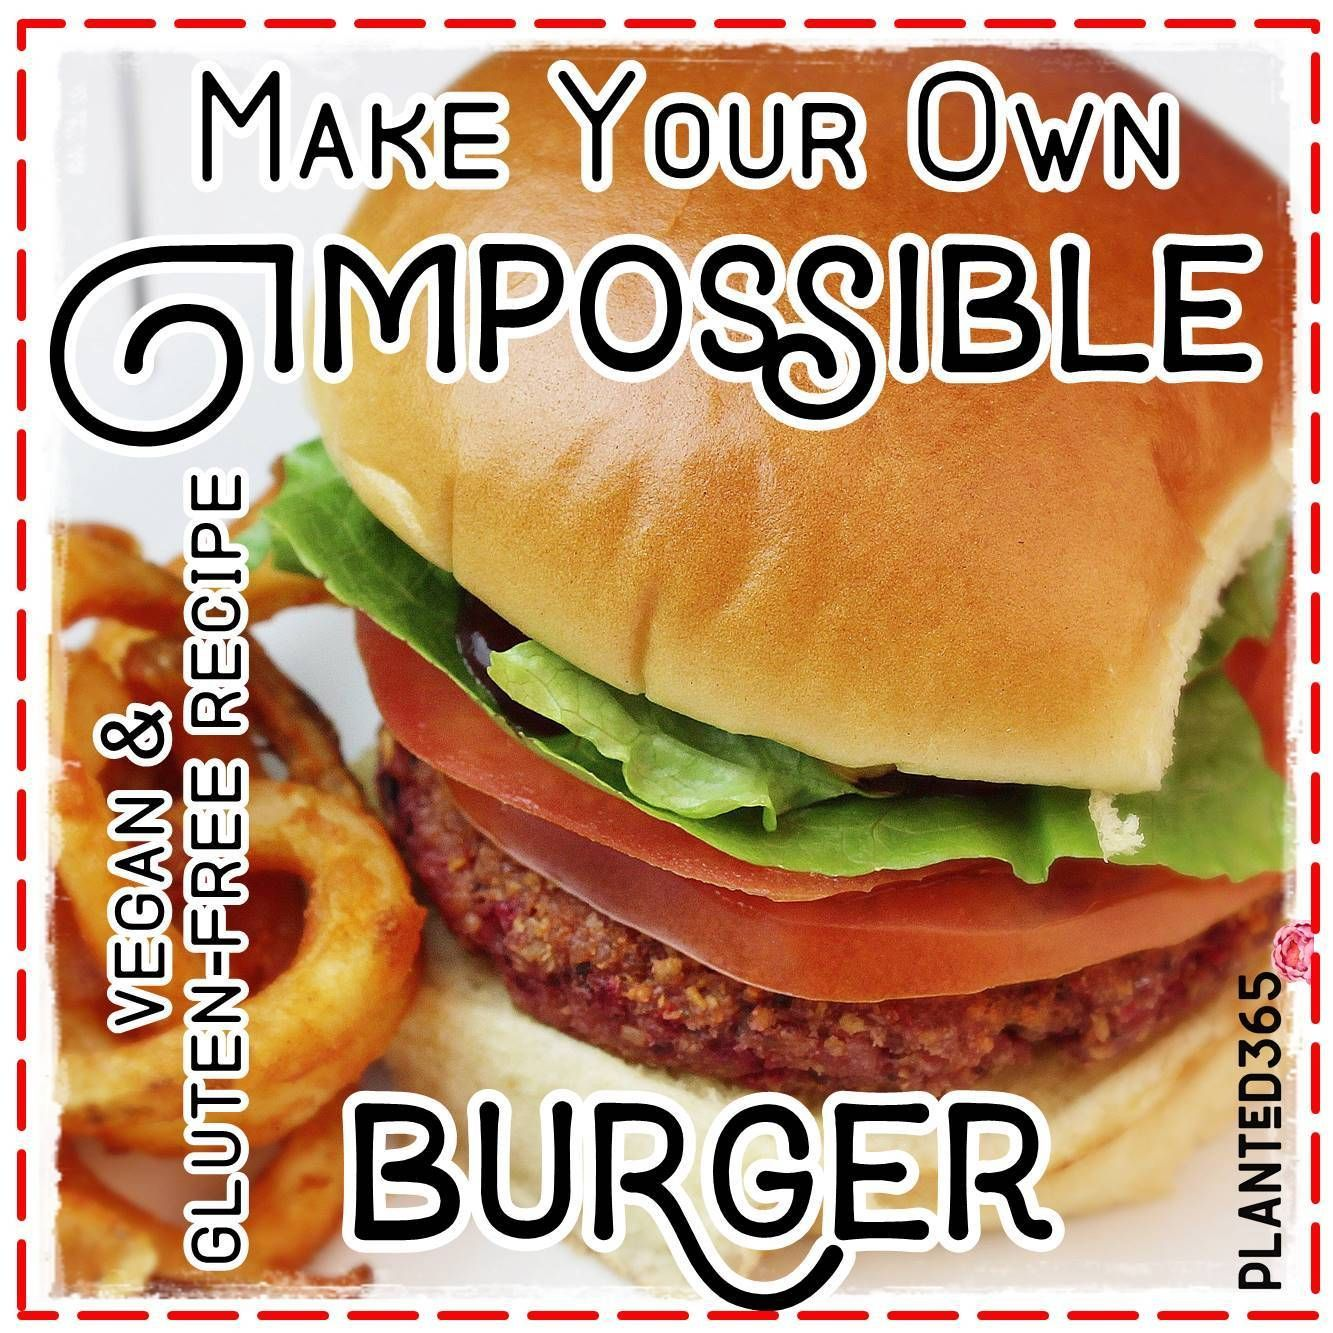 I M Possible Burger Beyond The Impossible Burger Recipe Planted365 Recipe In 2020 Recipes Delicious Healthy Recipes Food Bloggers Central